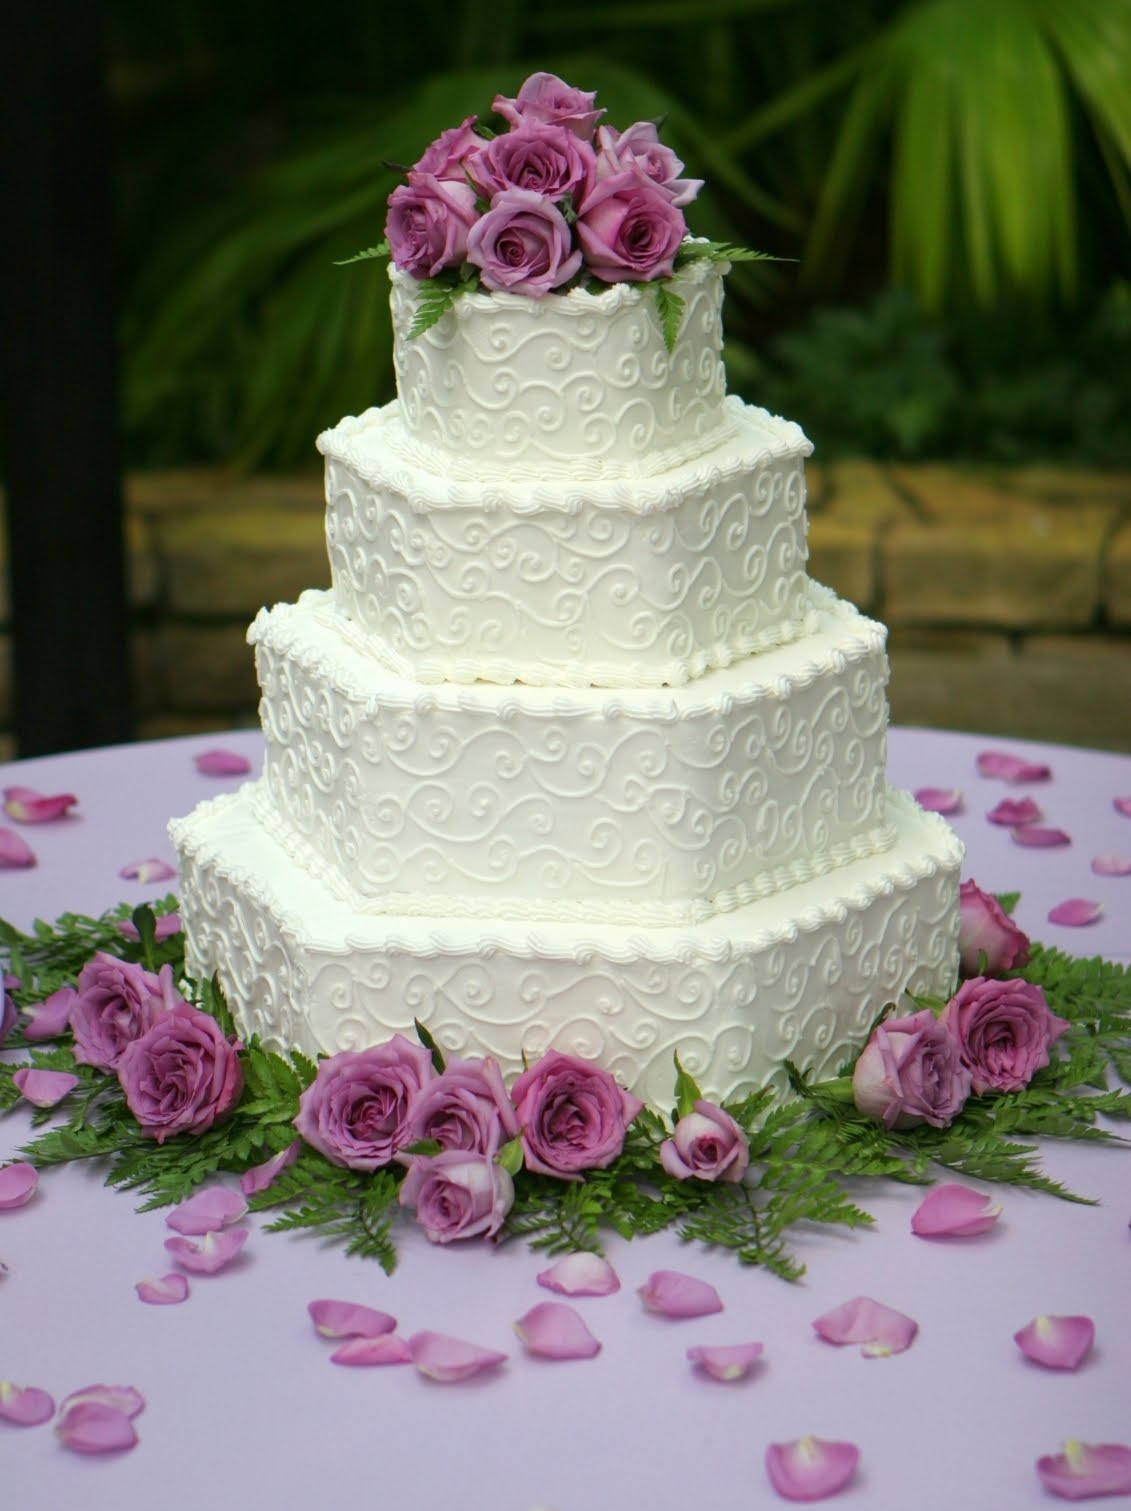 Costco Wedding Cakes  When you purchase Costco bakery wedding cakes takes after